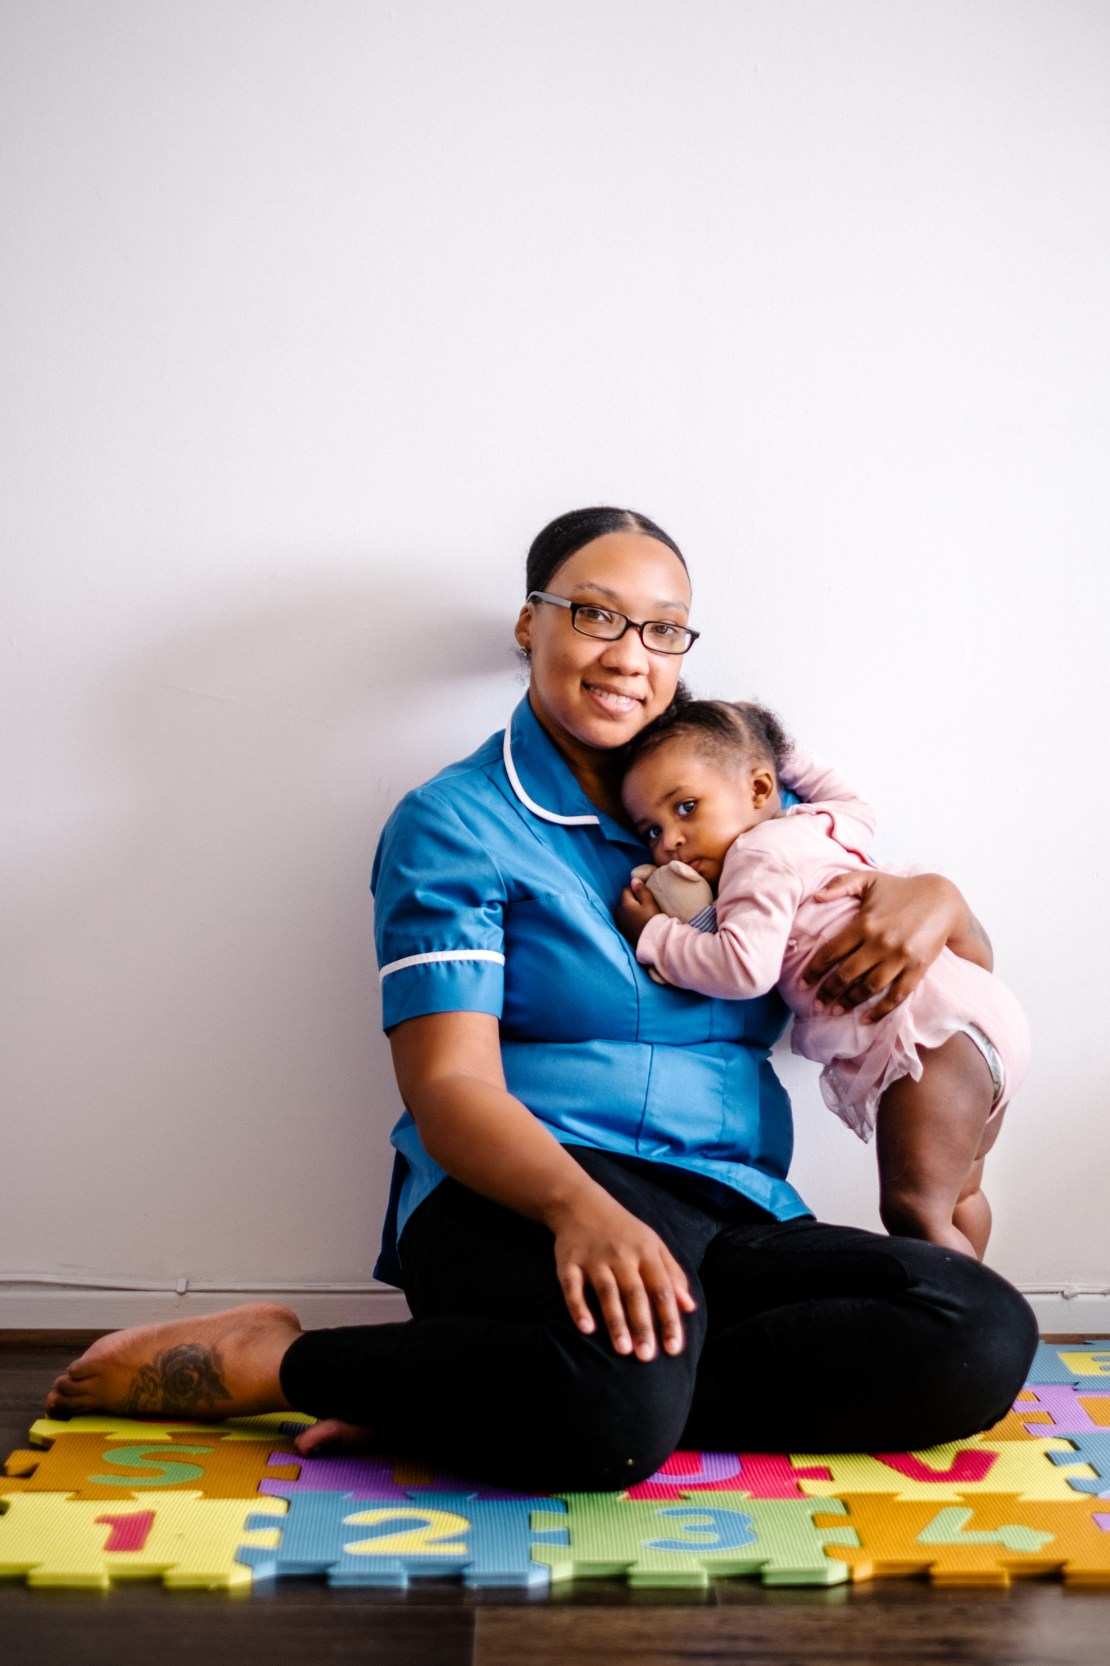 NHS midwife sitting on children's play mat while holding her daughter